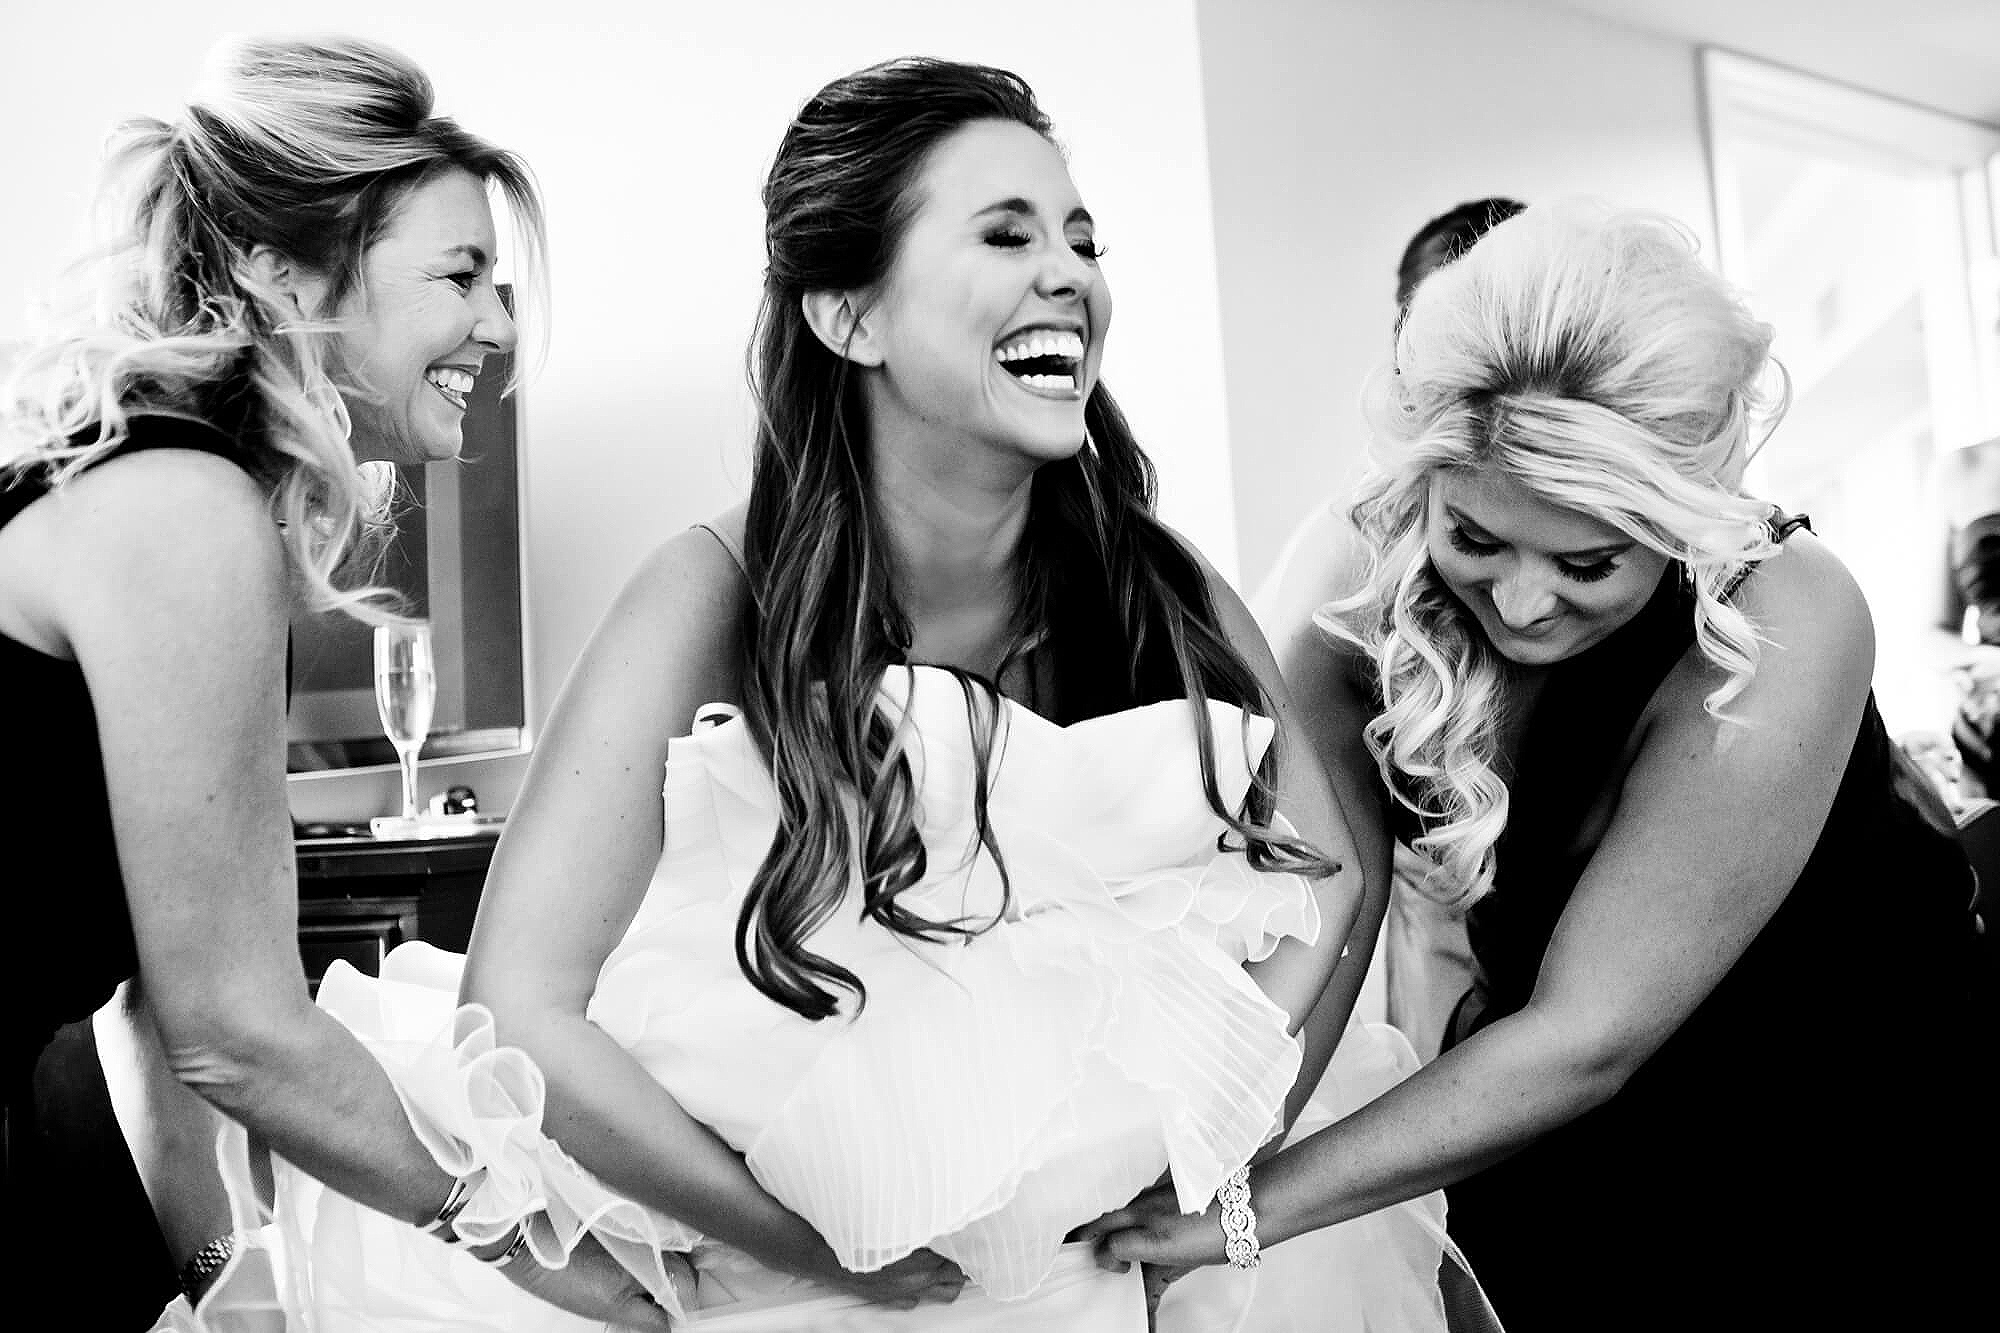 25-chase-park-plaza-bride-laughing-putting-on-dress.jpg